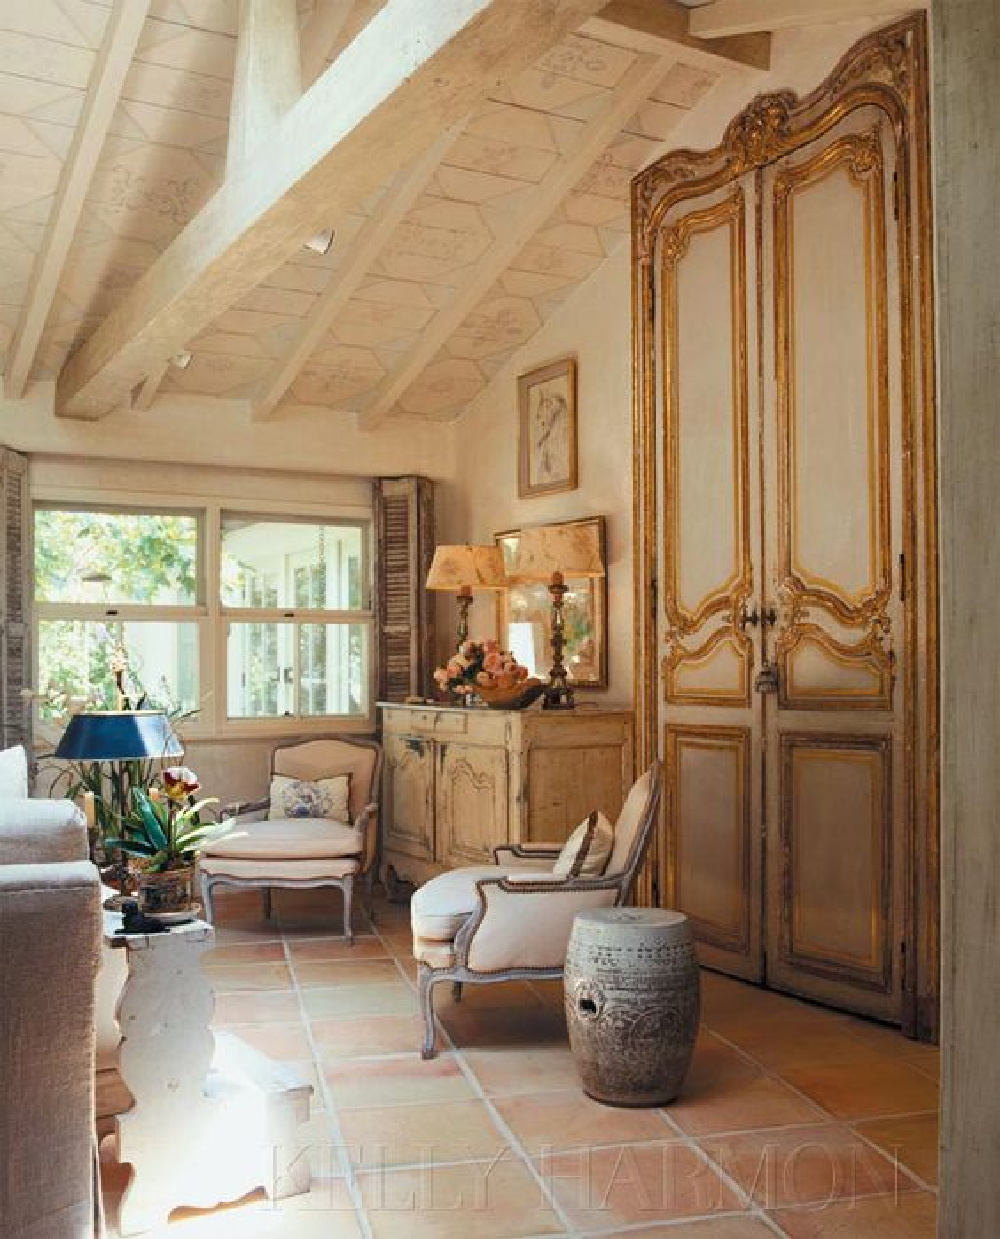 If breathtaking European farmhouse decorated rooms float your boat, come on over and soak up the inspiration from these European inspired elegant and sophisticated farmhouse style spaces. #FrenchCountry #elegantdecor #antiques